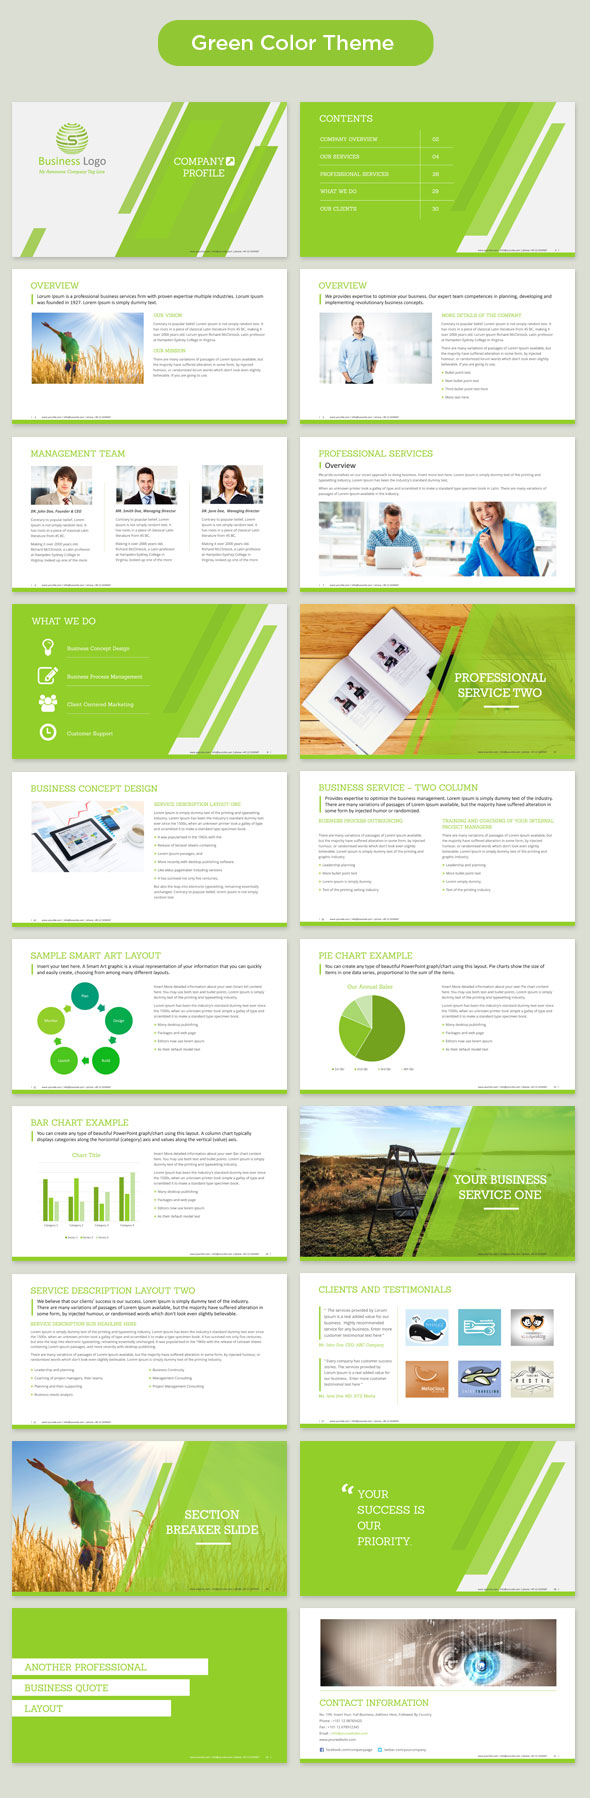 Company profile powerpoint template 350 master ppt for How to make a company profile template